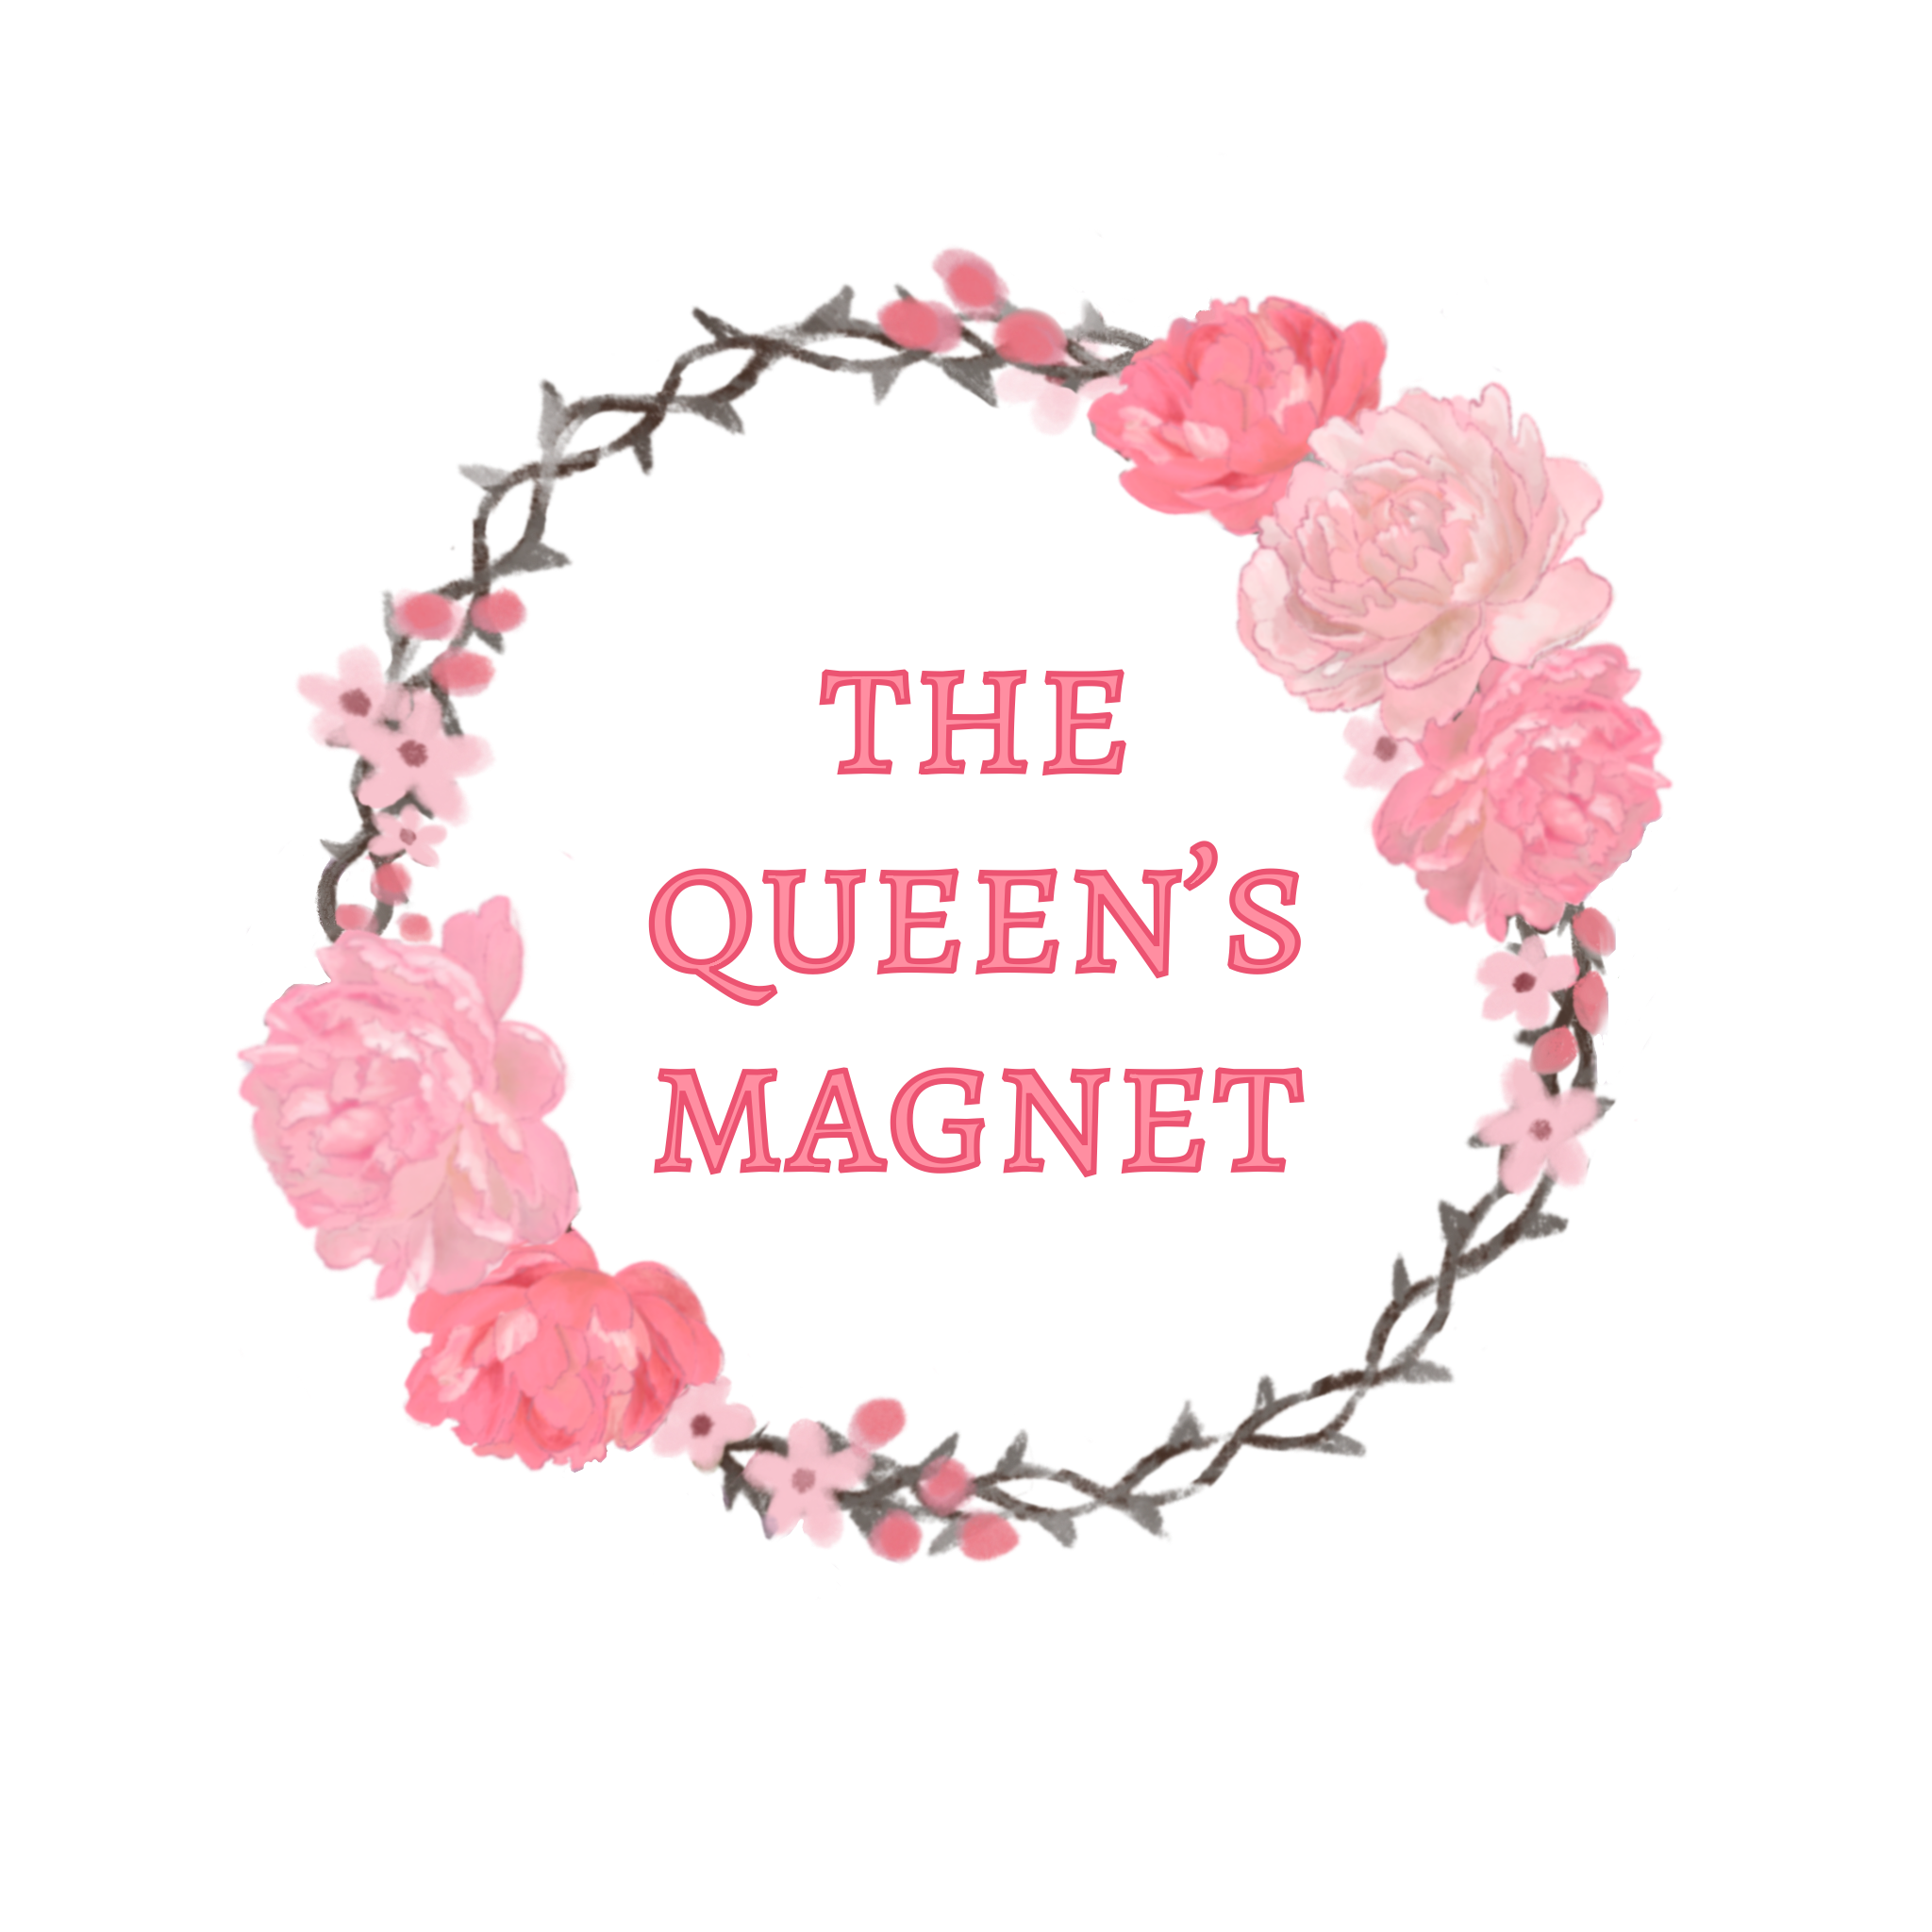 The Queen's Magnet